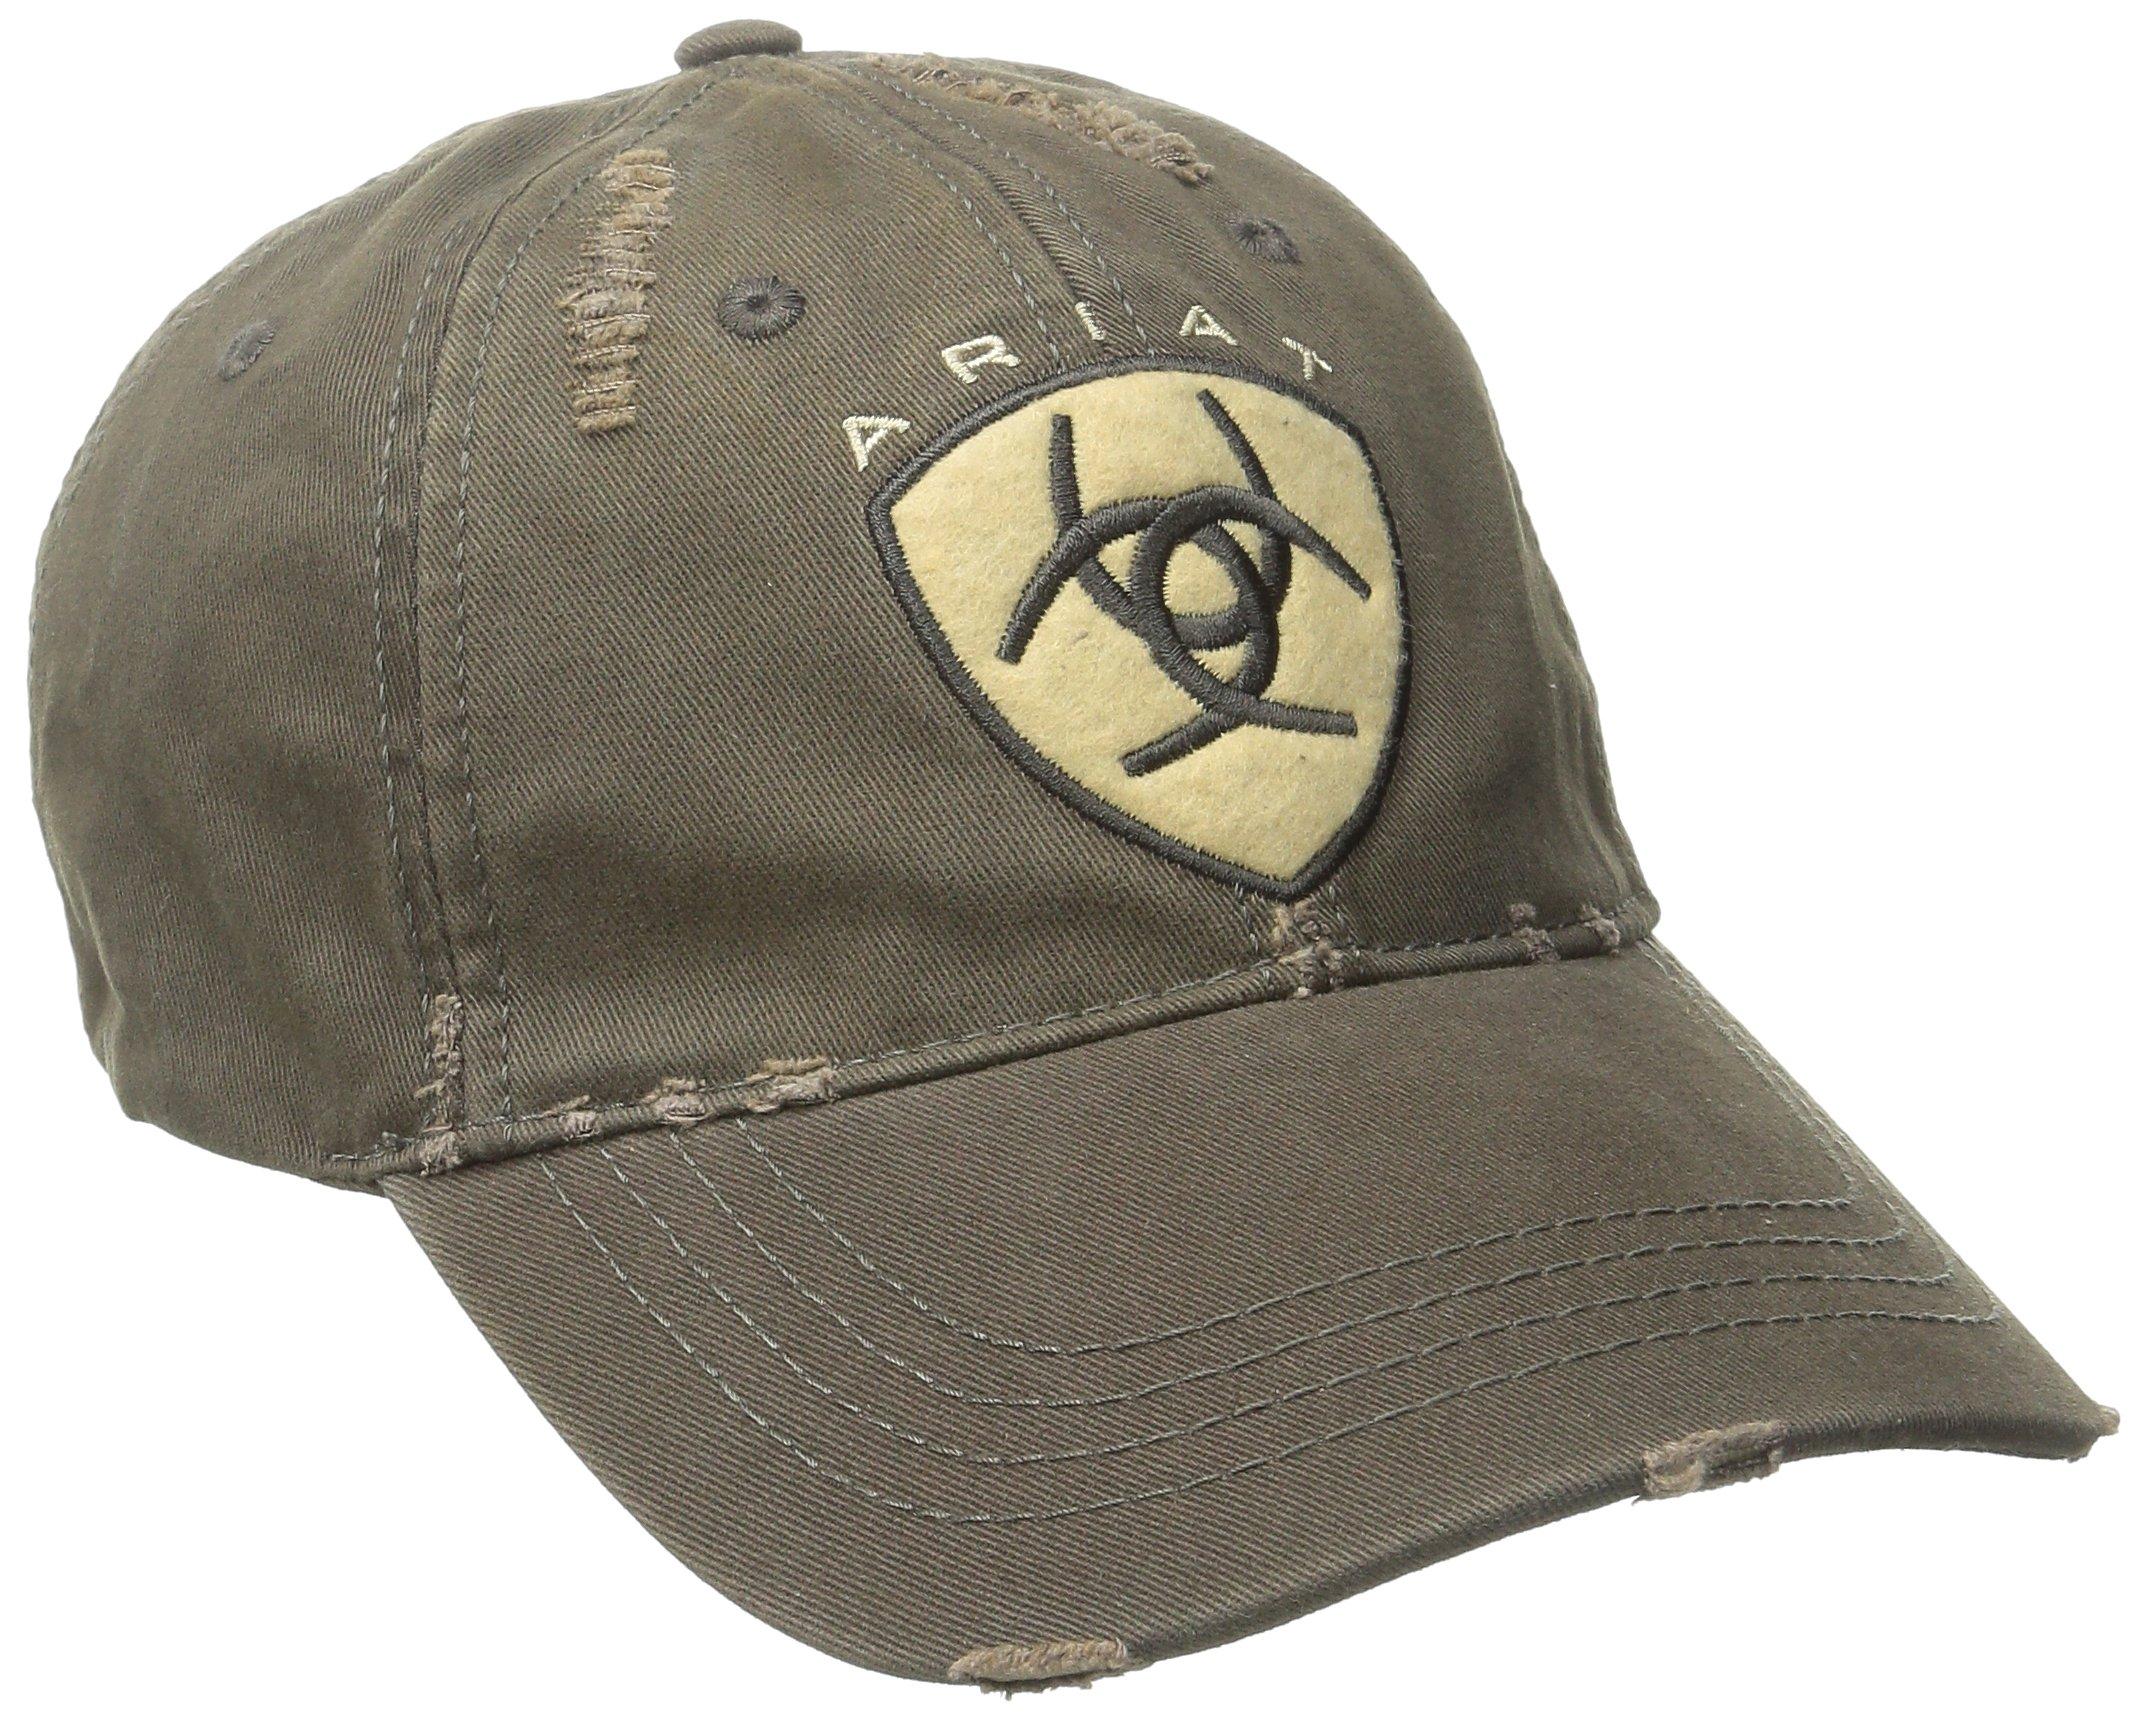 Ariat Men's Distressed Hat, Brown, One Size